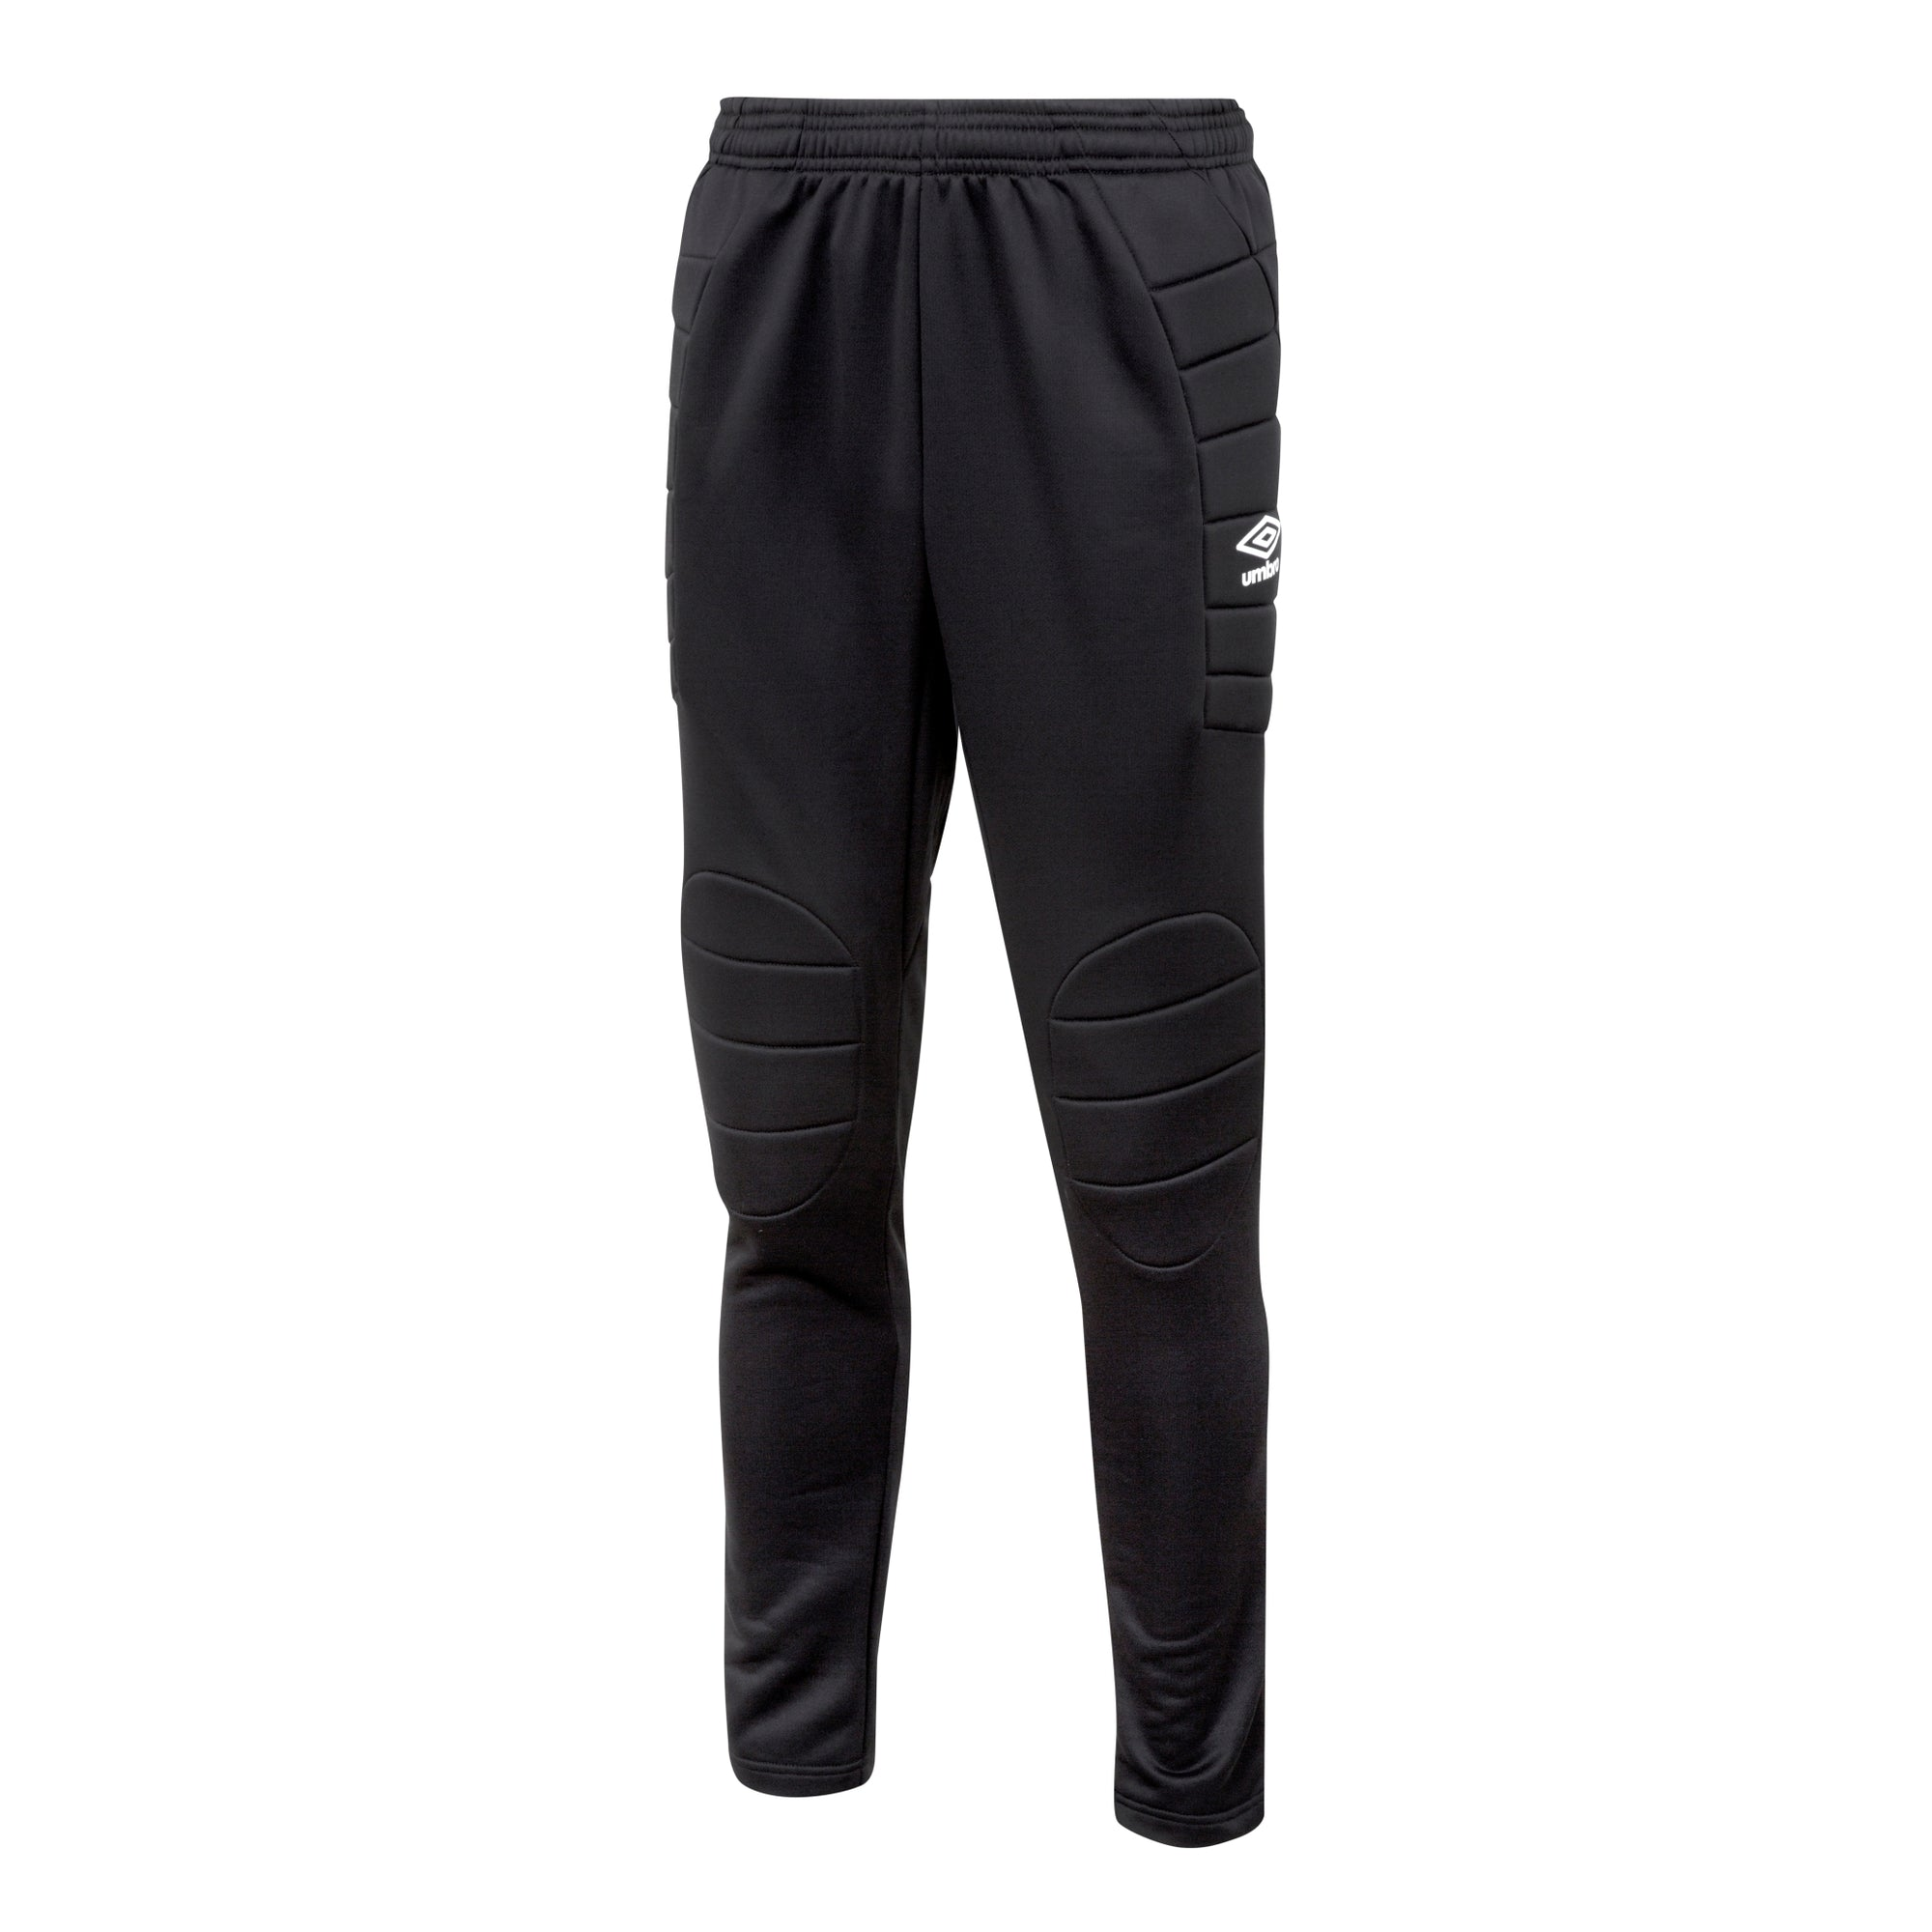 Umbro GK padded pant in black